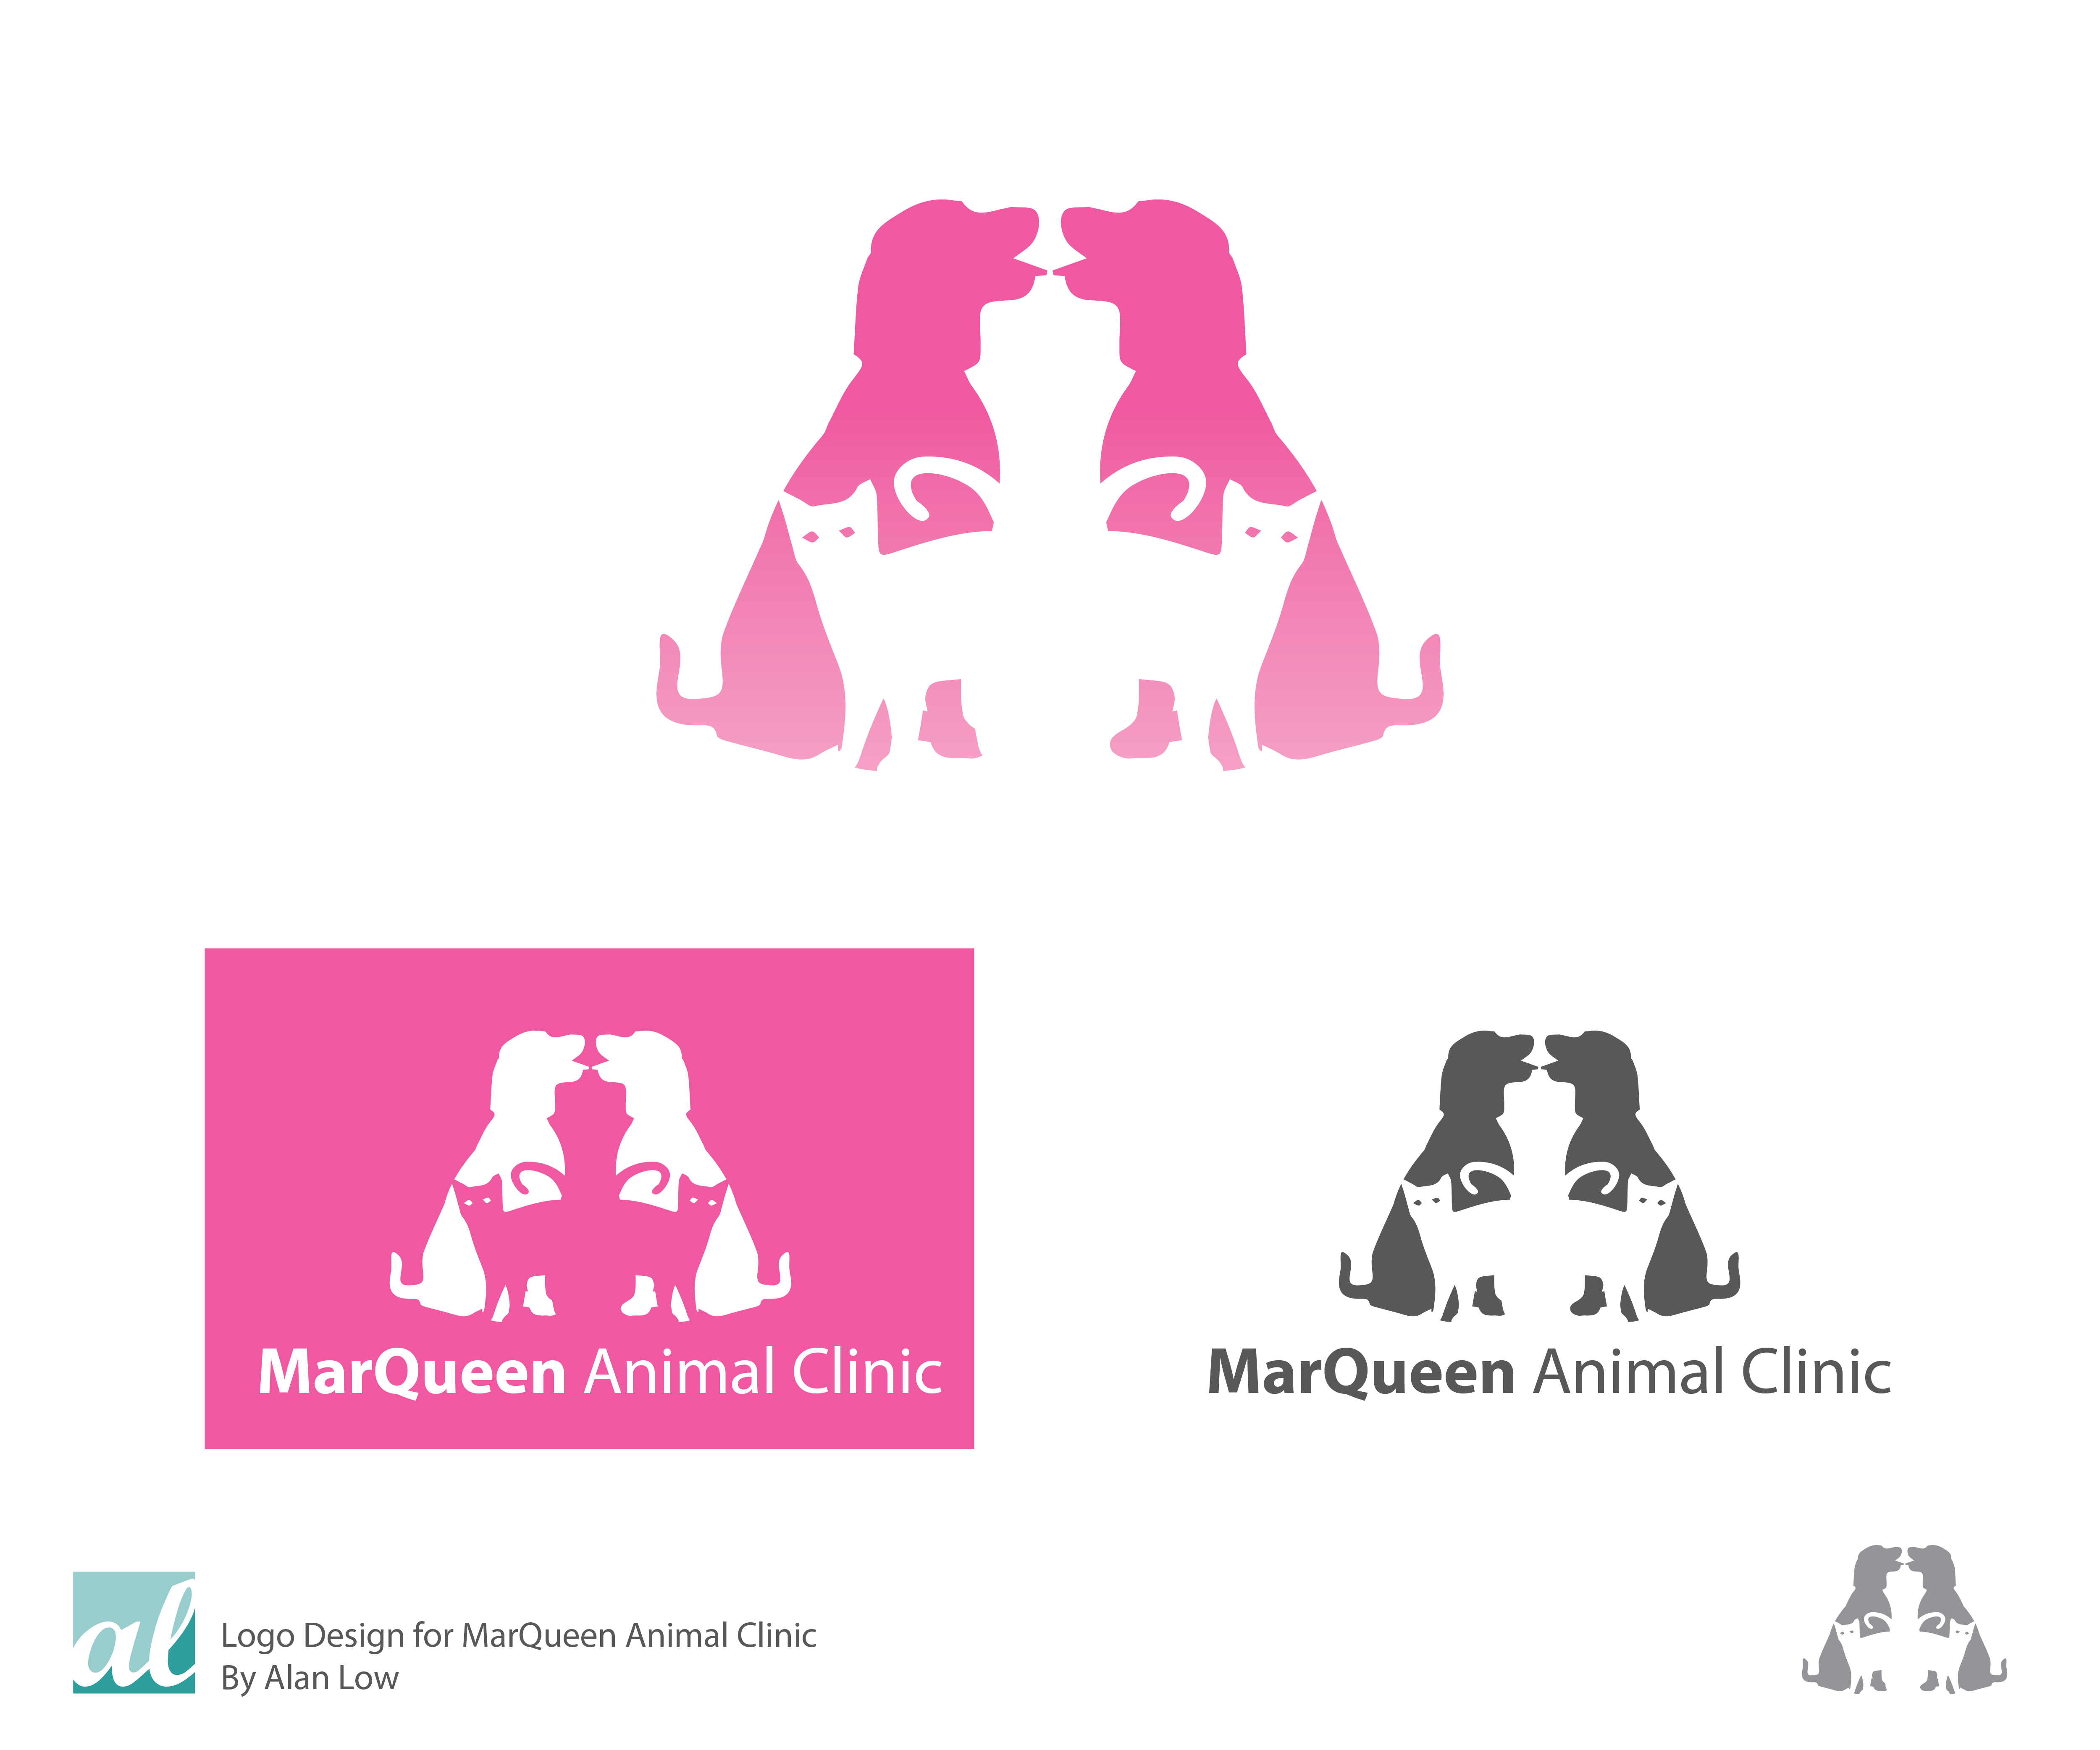 Logo Design by Alan Low - Entry No. 123 in the Logo Design Contest Fun Logo Design for MarQueen Animal Clinic.